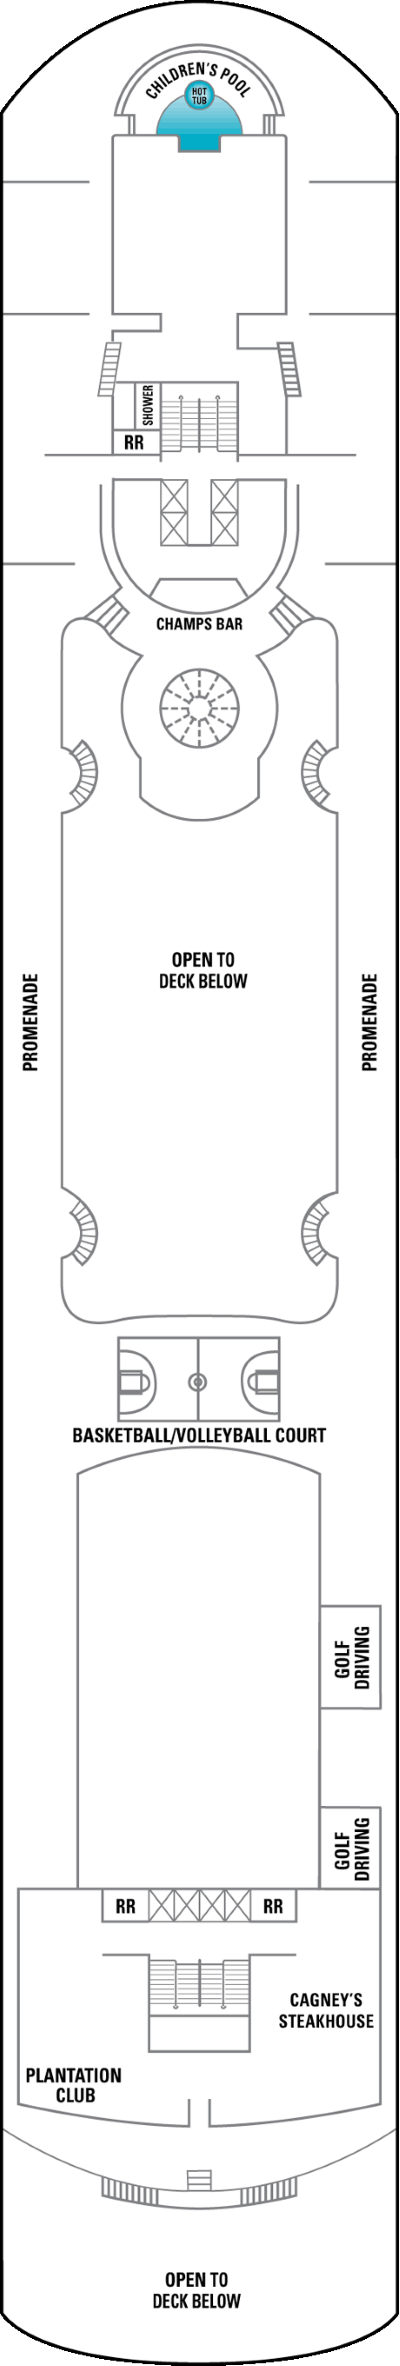 Norwegian Sky Deck 12 layout